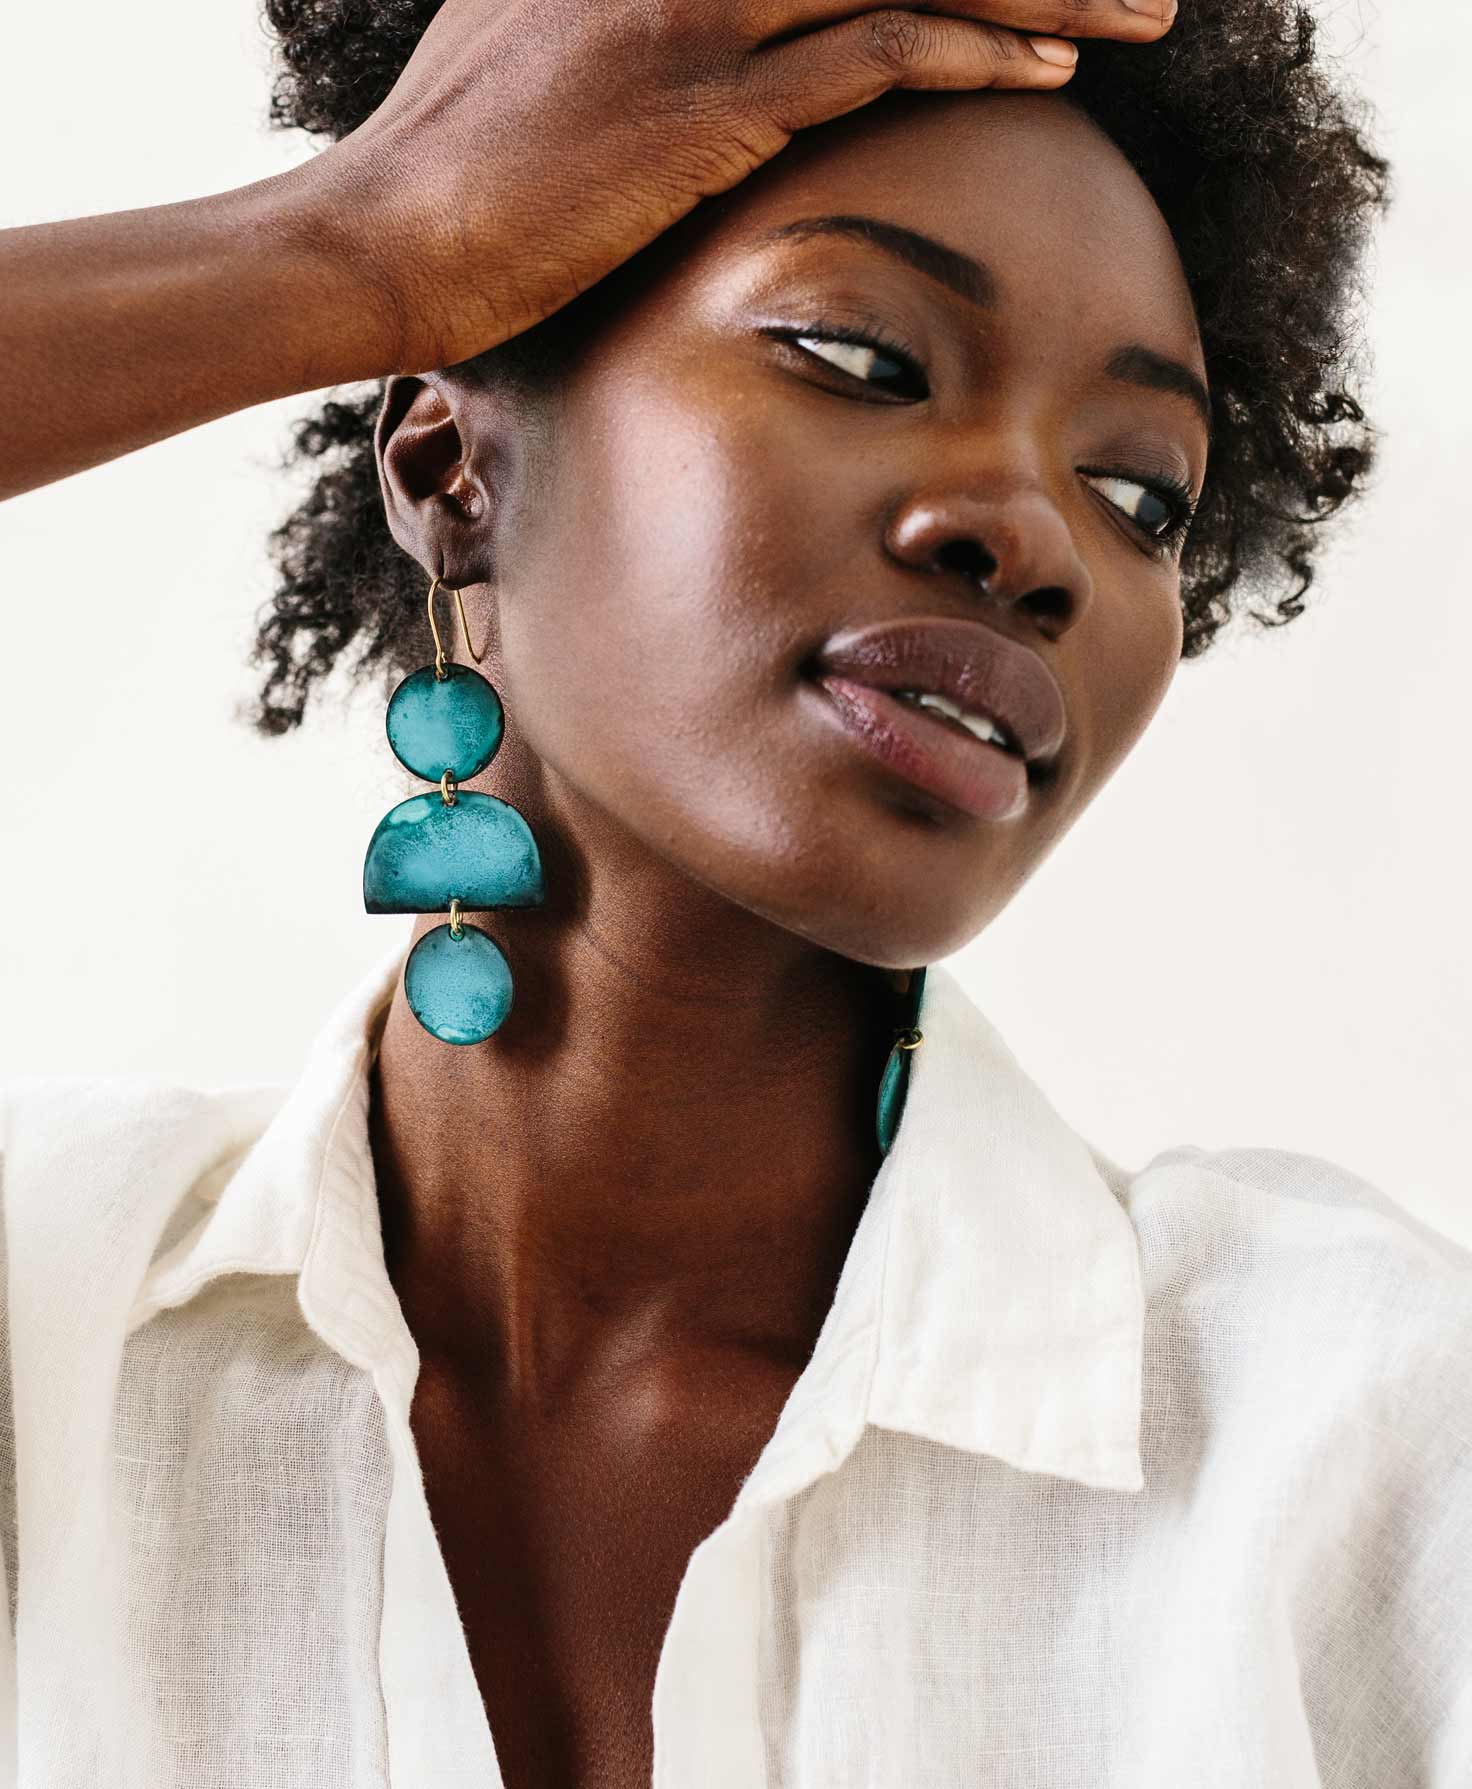 A model wears the Tide Pool Earrings with a crisp white blouse. The earrings have a rich teal color that makes a bold statement.